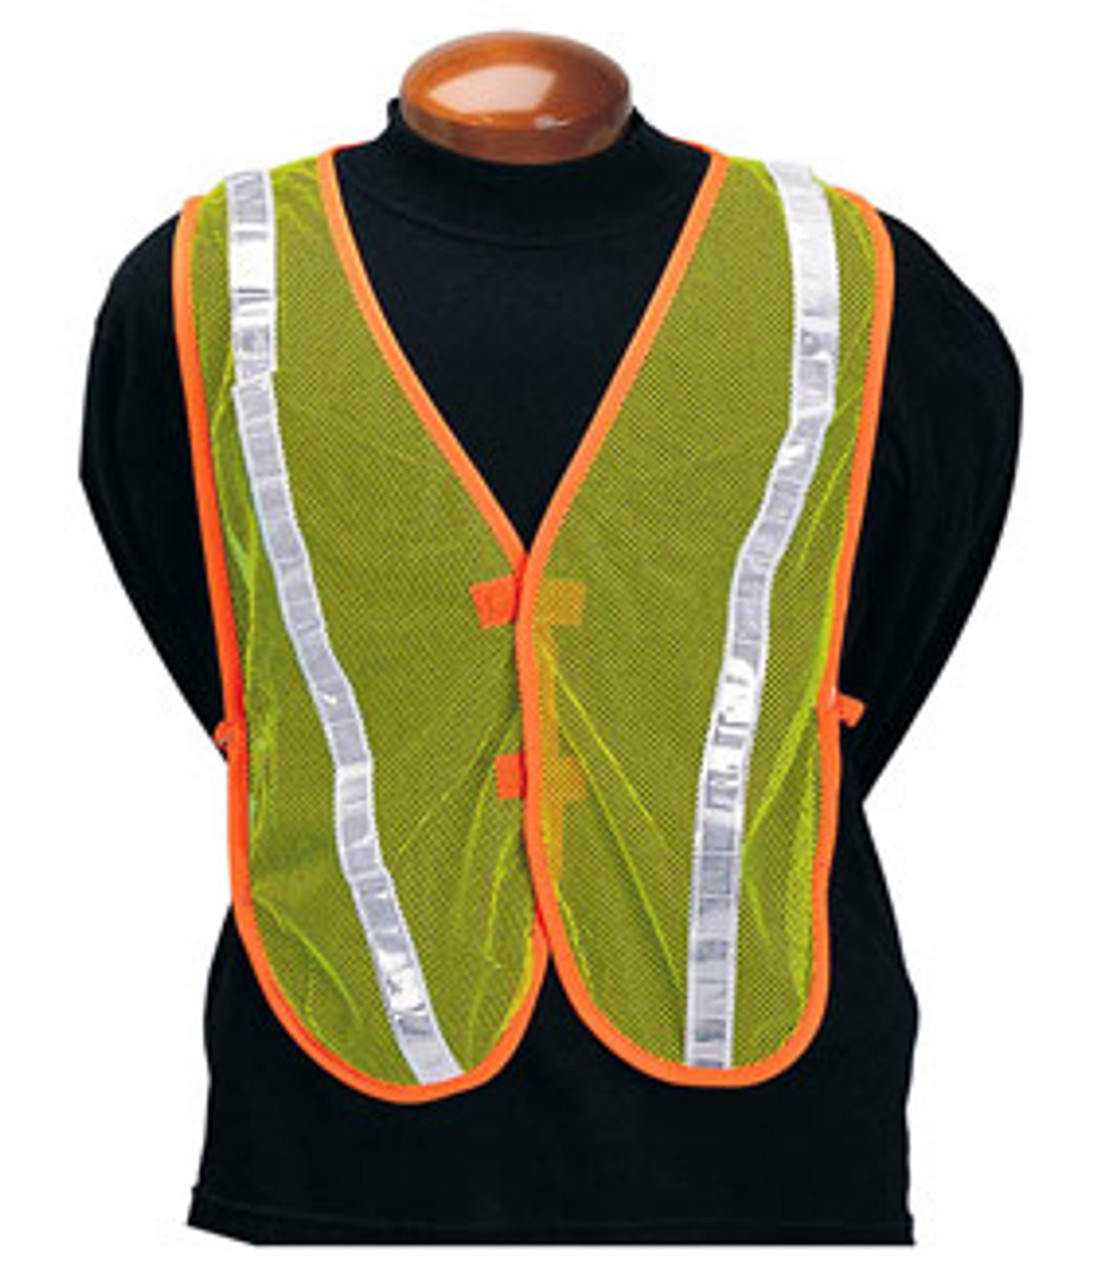 Lime Blaze Safety Vest